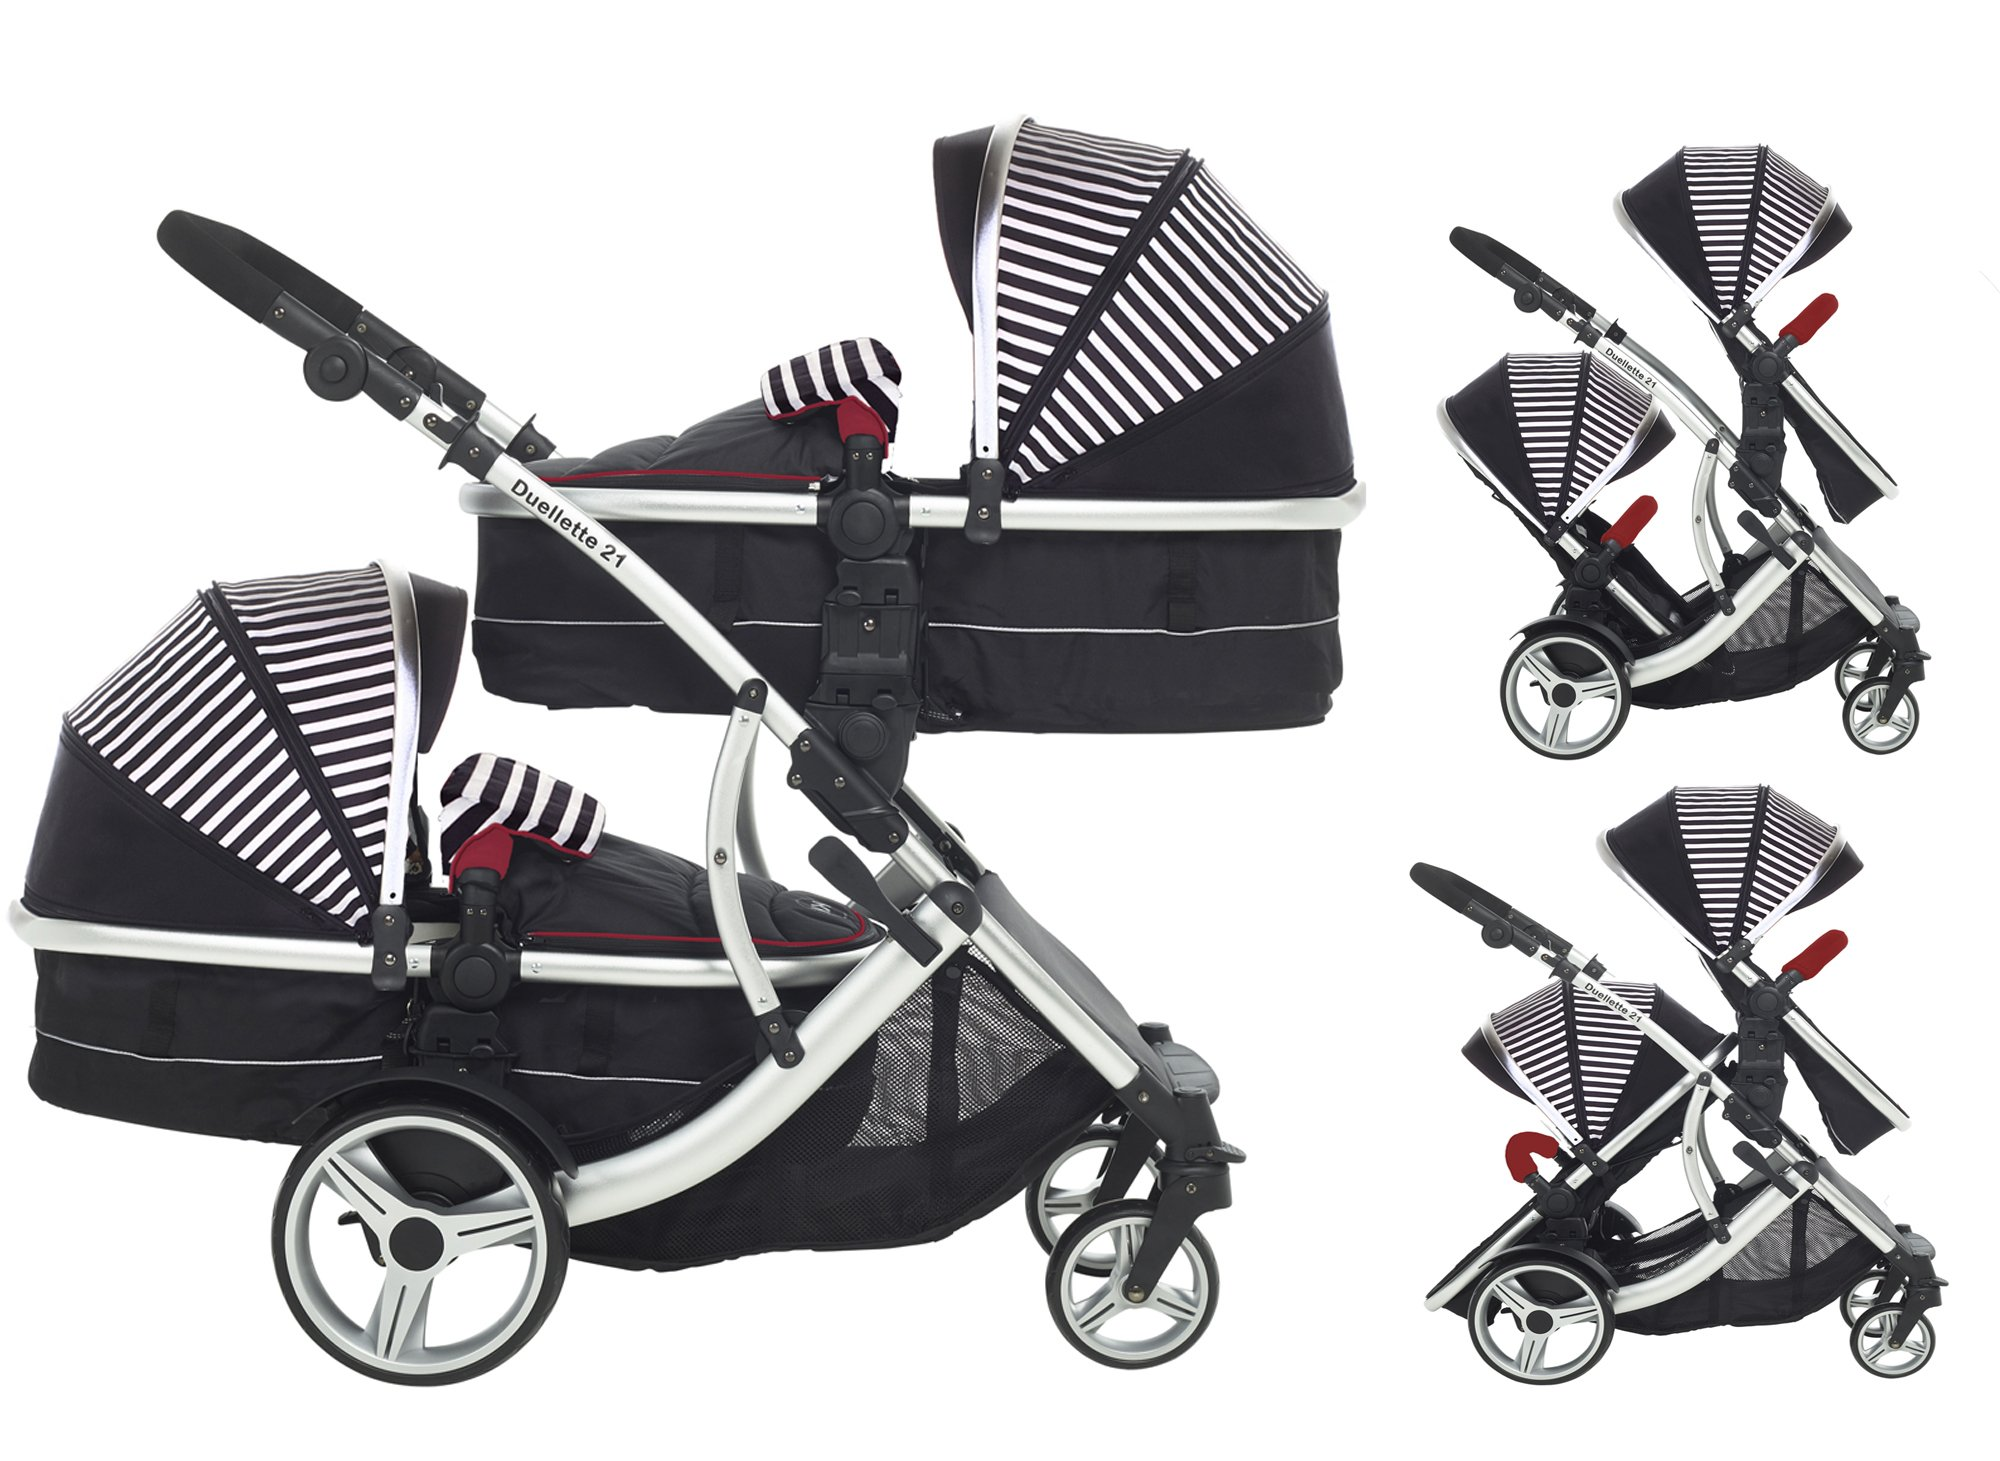 Kids Kargo Duellette Combi Tandem Double Twin pushchair (Oxford Stripe) for Newborn Twins Kids Kargo Fully safety tested Compatible with car seats; Kids Kargo, Britax Baby safe or Maxi Cosi adaptors. Versatile. Suitable for Newborn Twins:  carrycots have mattress and soft lining, which zip off. Remove lining and lid. 1